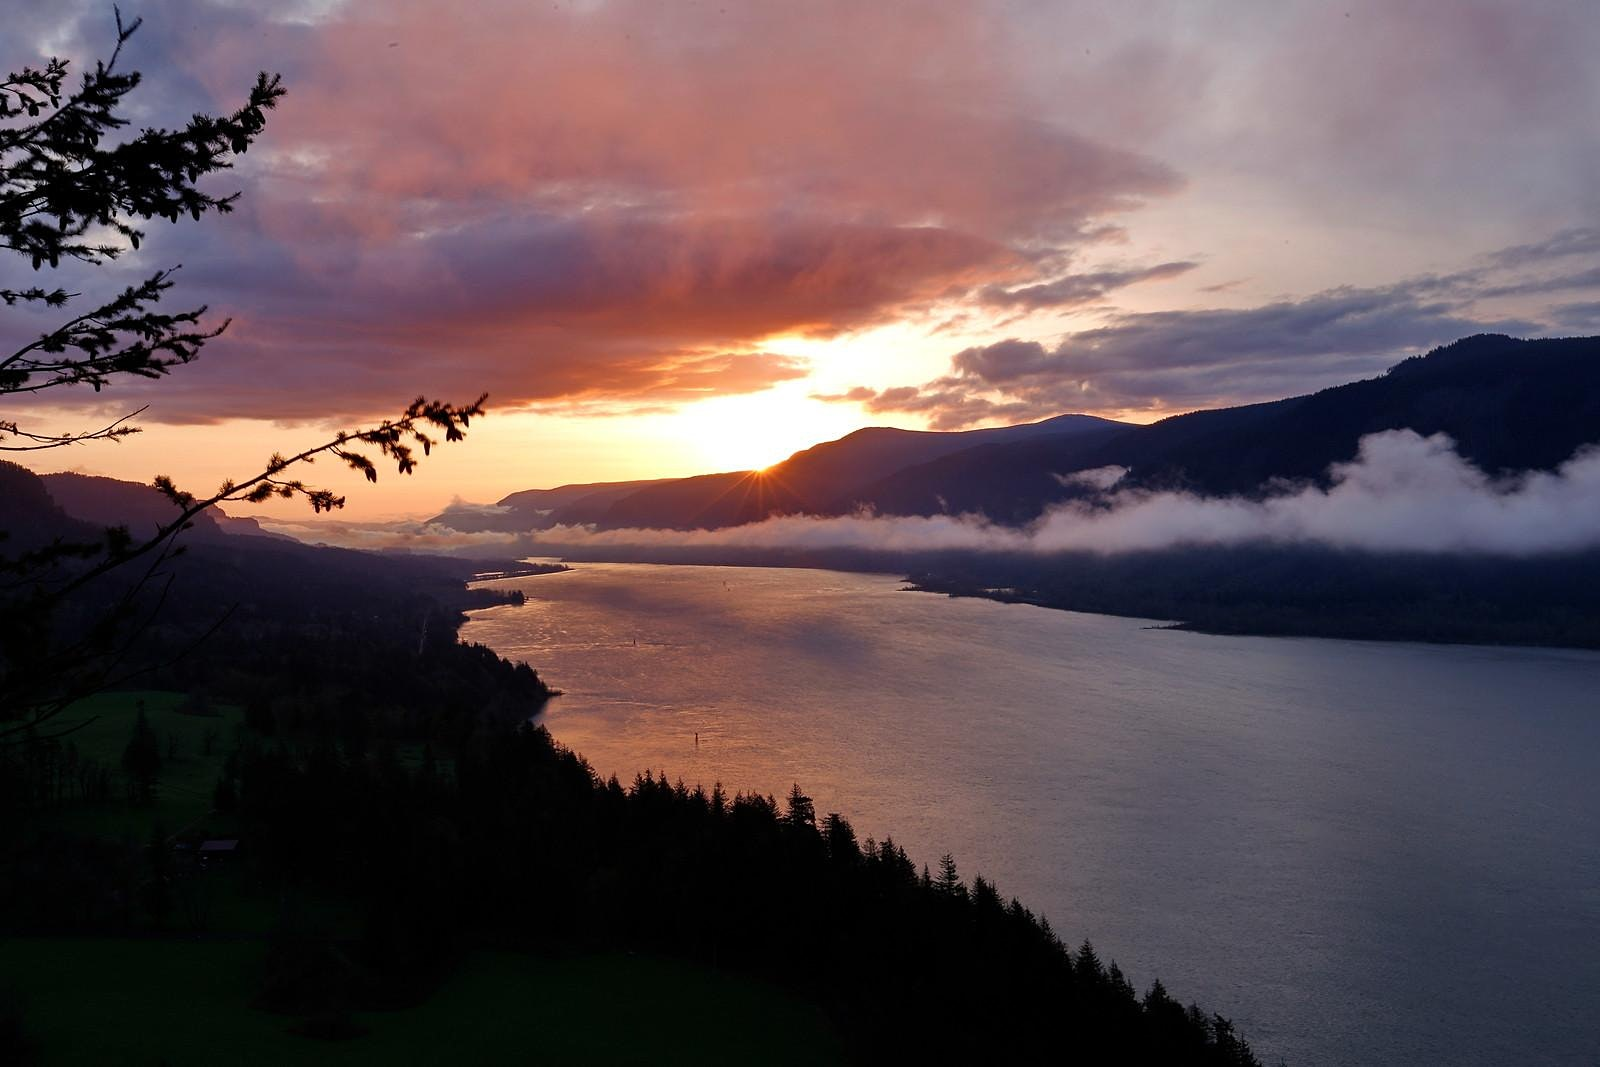 Sunrise at Nancy Russell Overlook, OR